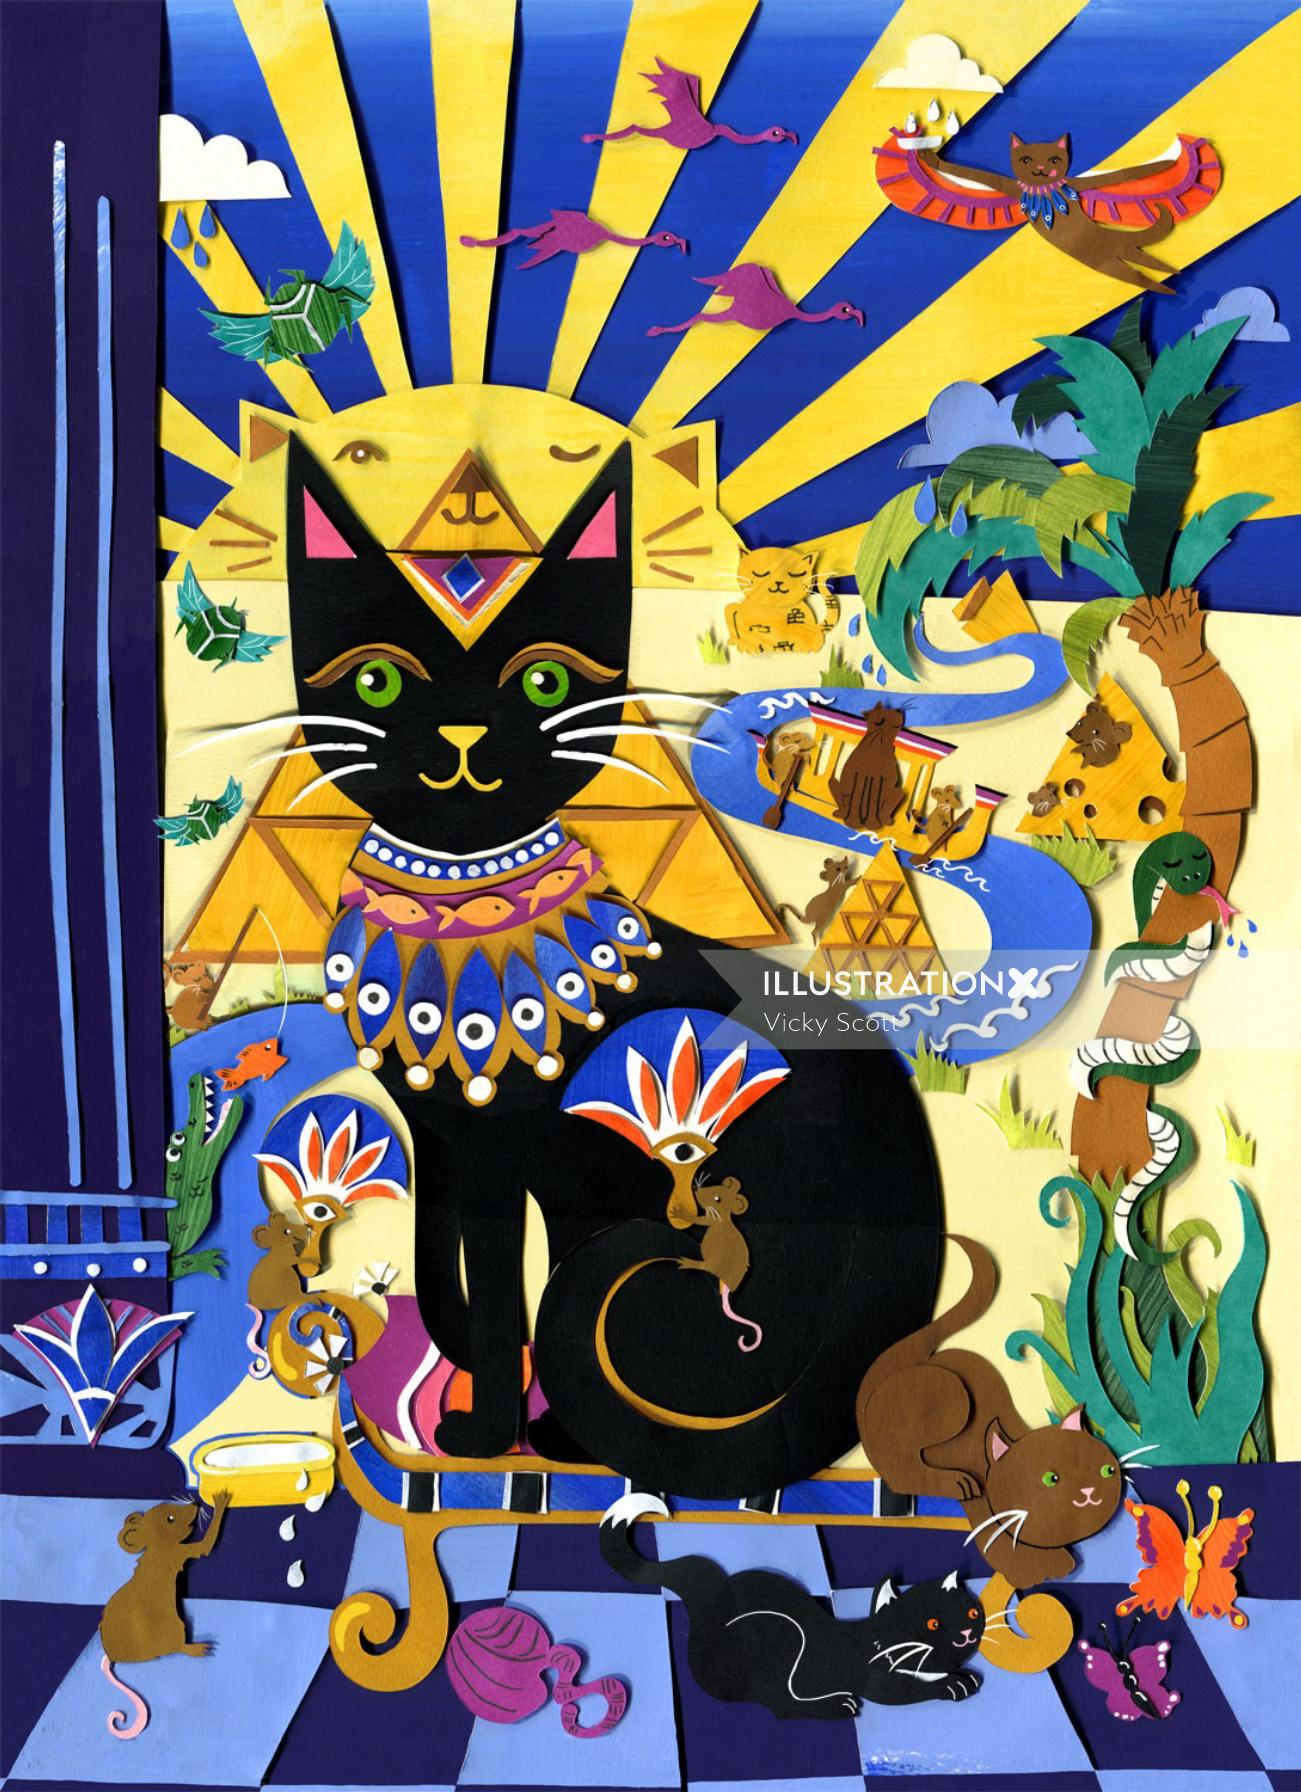 Illustration inspired by Ancient Egypt